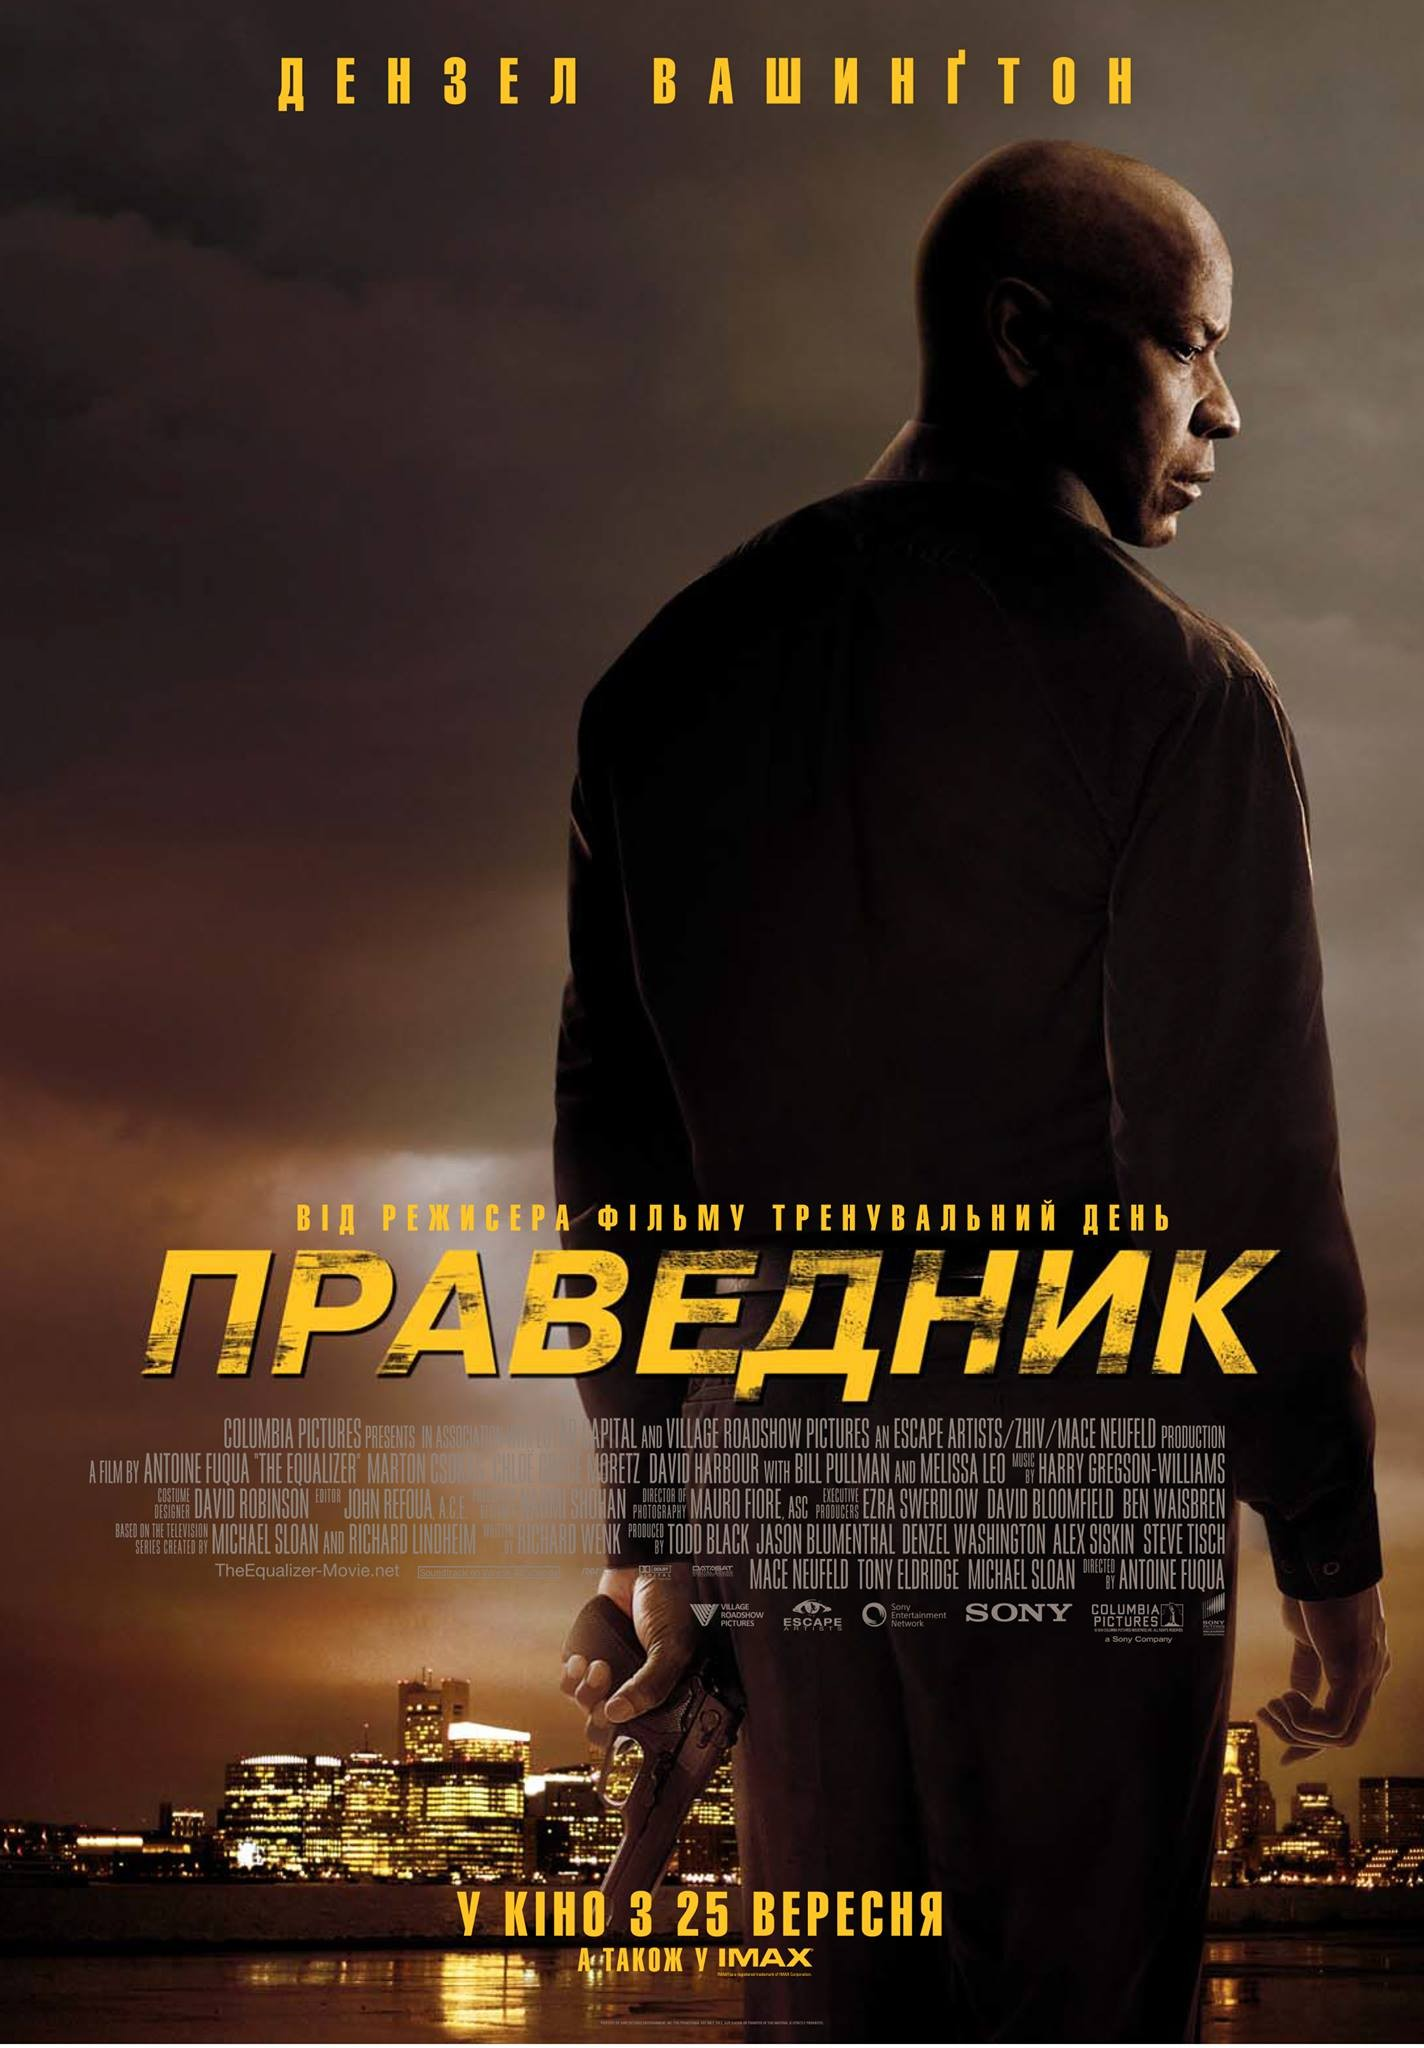 The Equalizer-Official Poster Banner PROMO XXLG-15AGOSTO2014